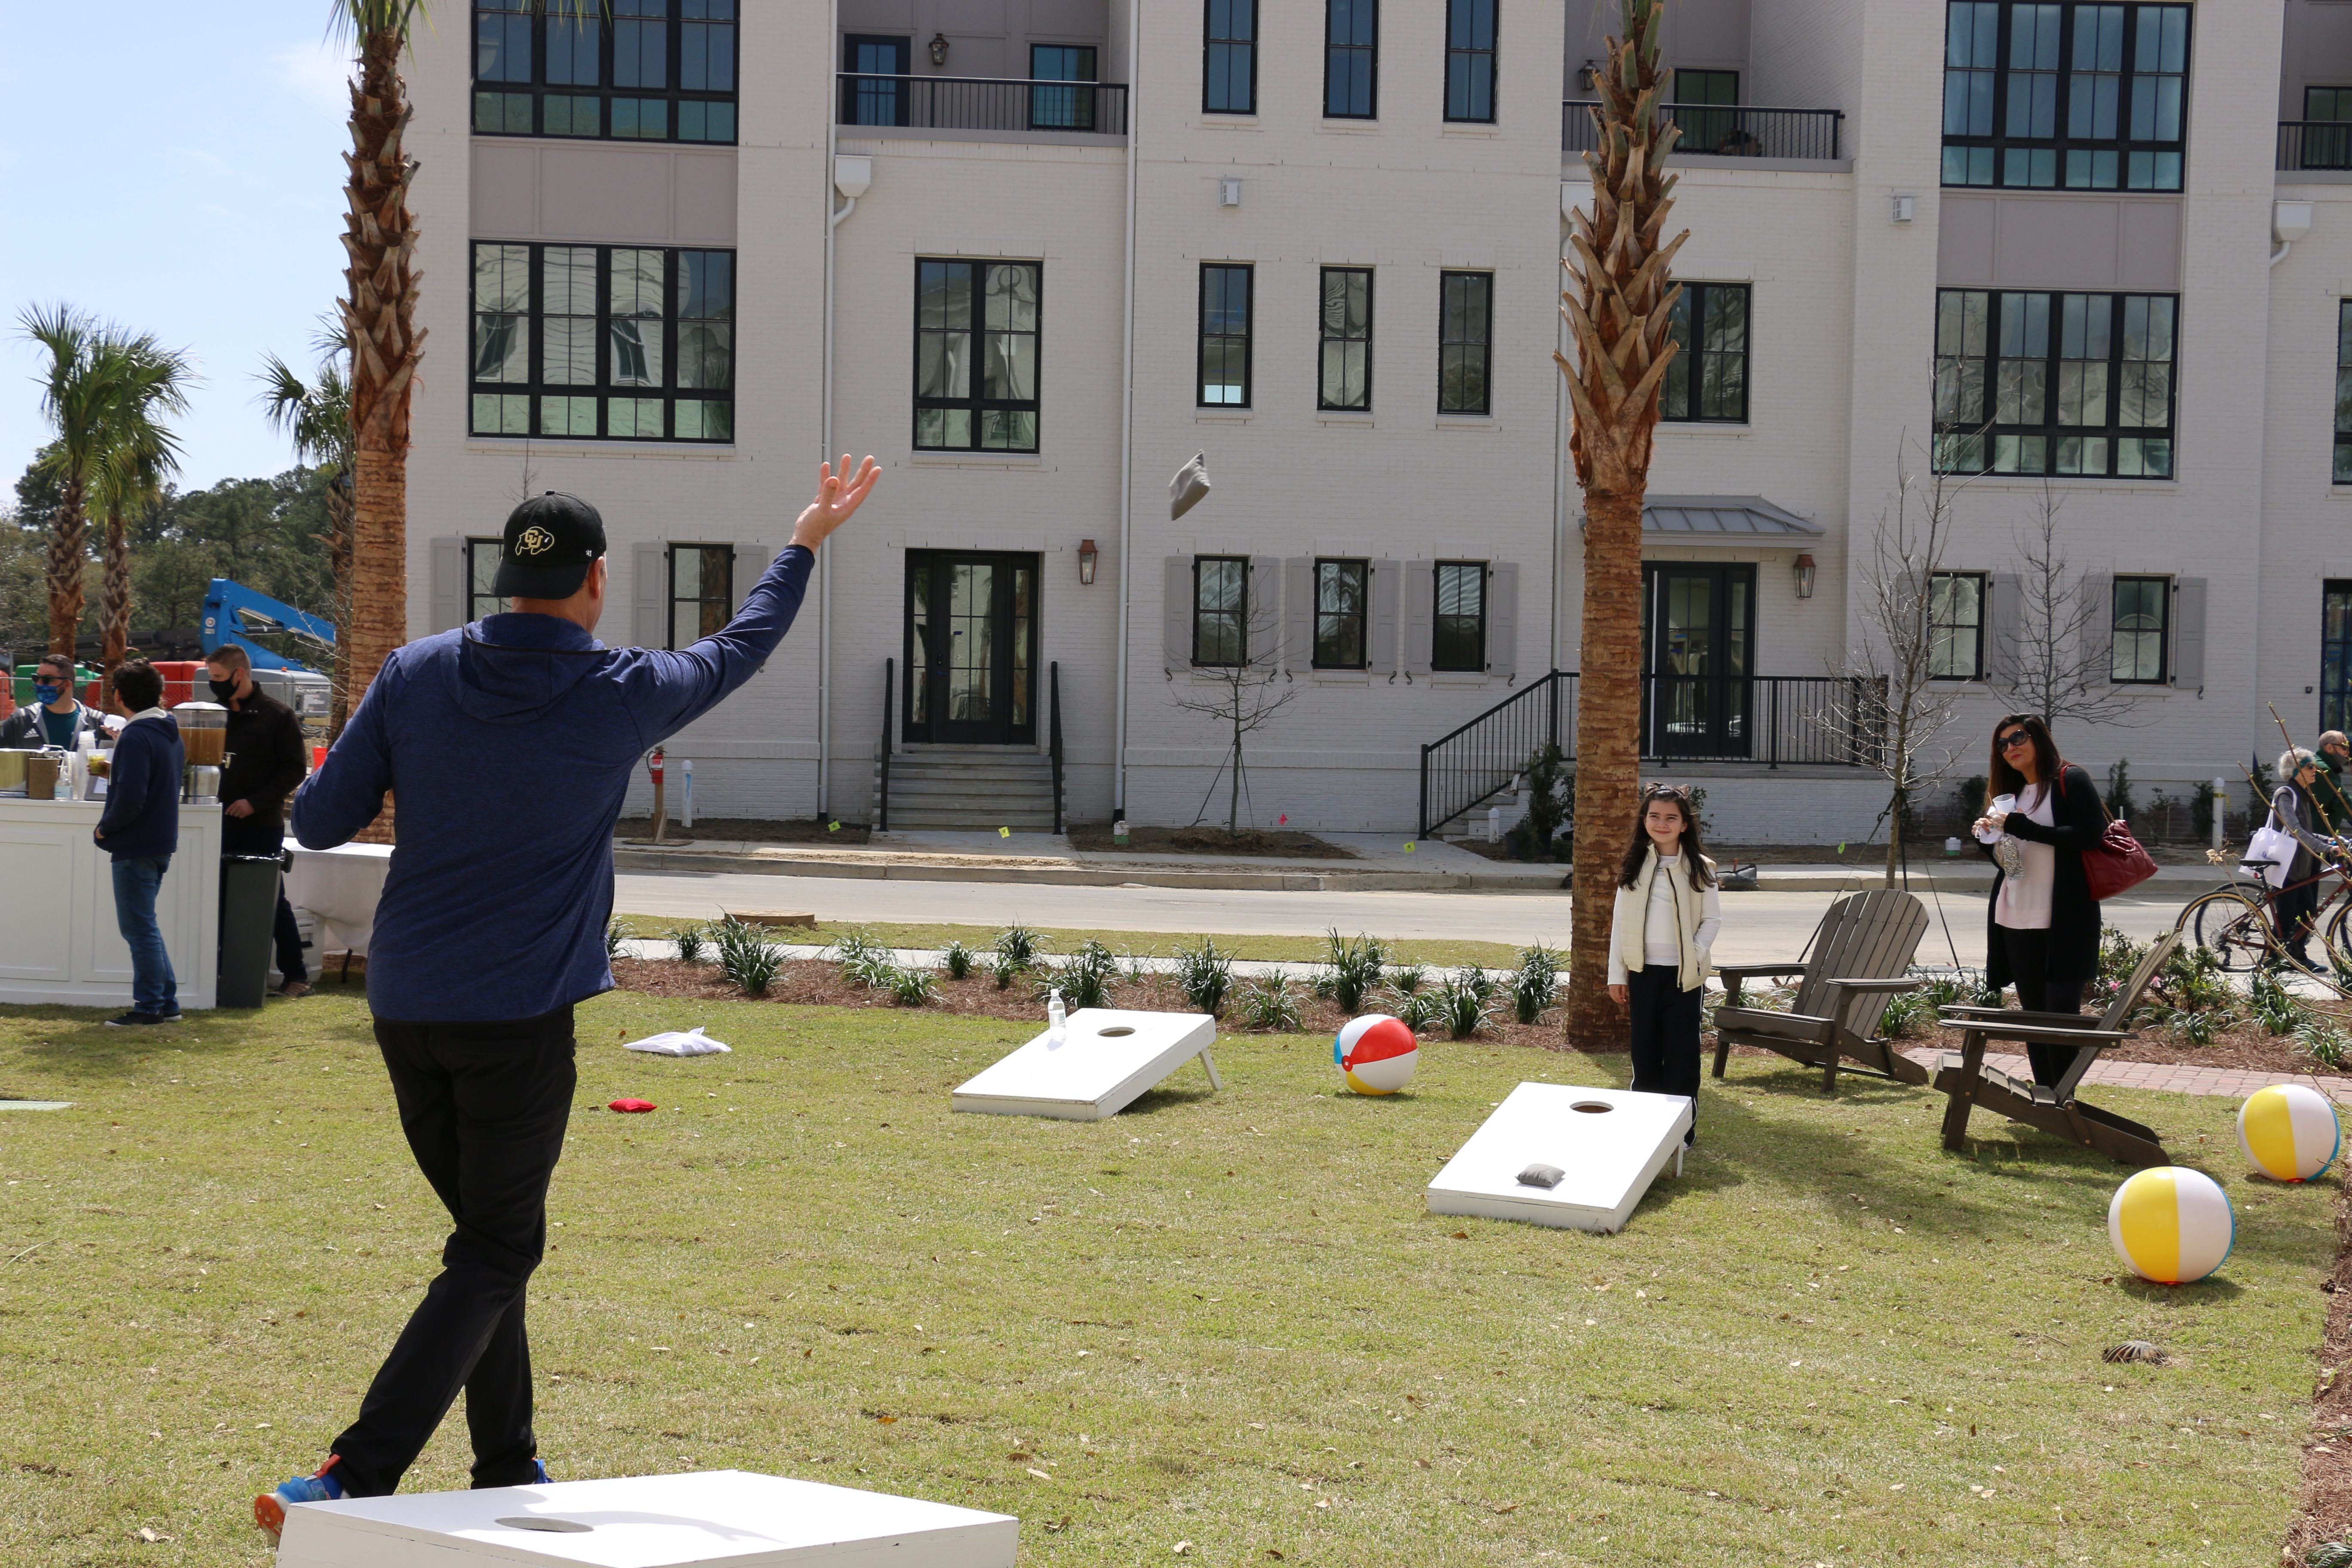 Cornhole was one of many activities available for guests attending the grand opening of The Waterfront on Daniel Island. The community area adjacent to condominiums and townhouses offers a green space that is perfect for playing games.